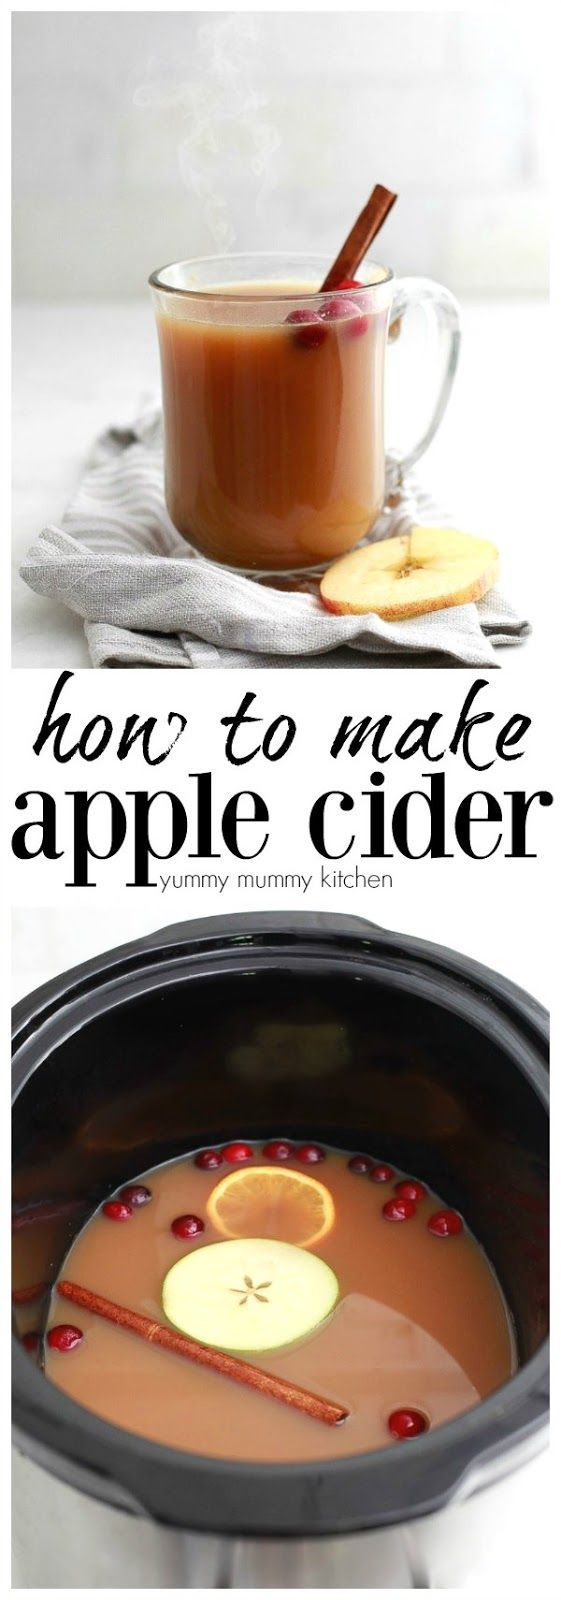 How to make apple cider from scratch. Homemade spiced apple cider is so easy to make and party perfect served from the slow cooker crock pot. #crockpot #applecider #autumn #slowcooker